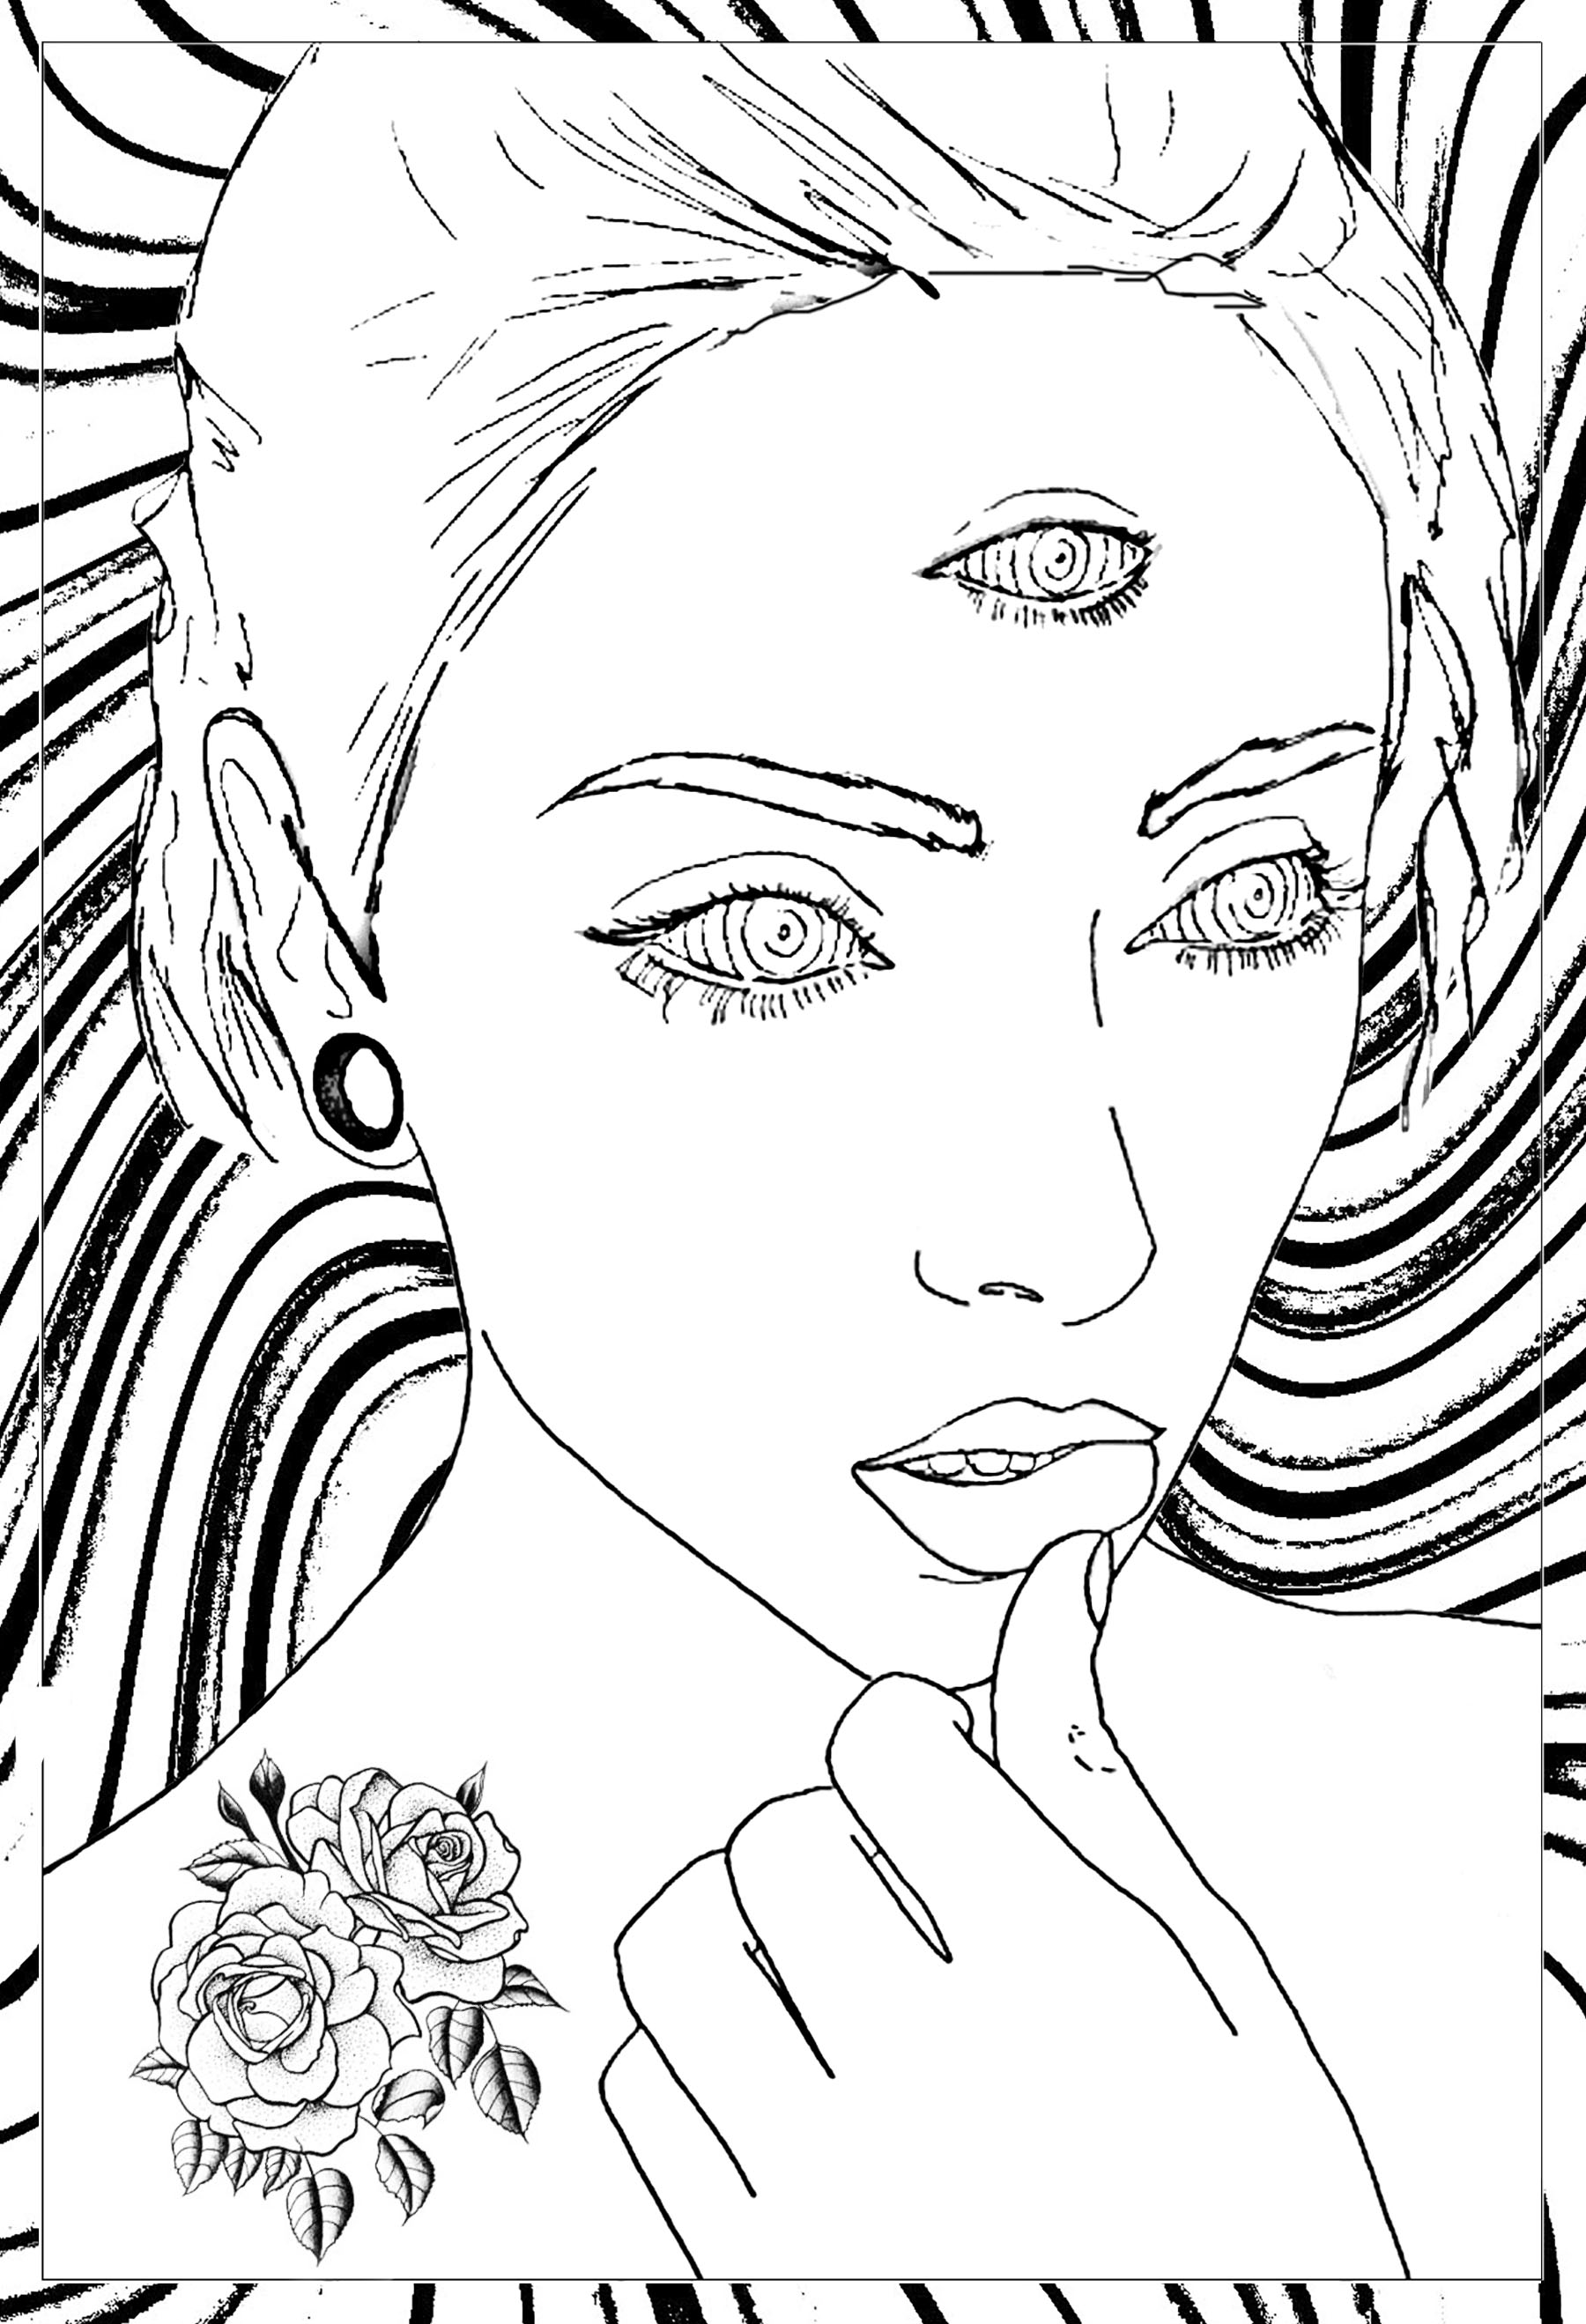 coloring pages for adults trippy psychedelic 1bis psychedelic adult coloring pages pages for trippy adults coloring